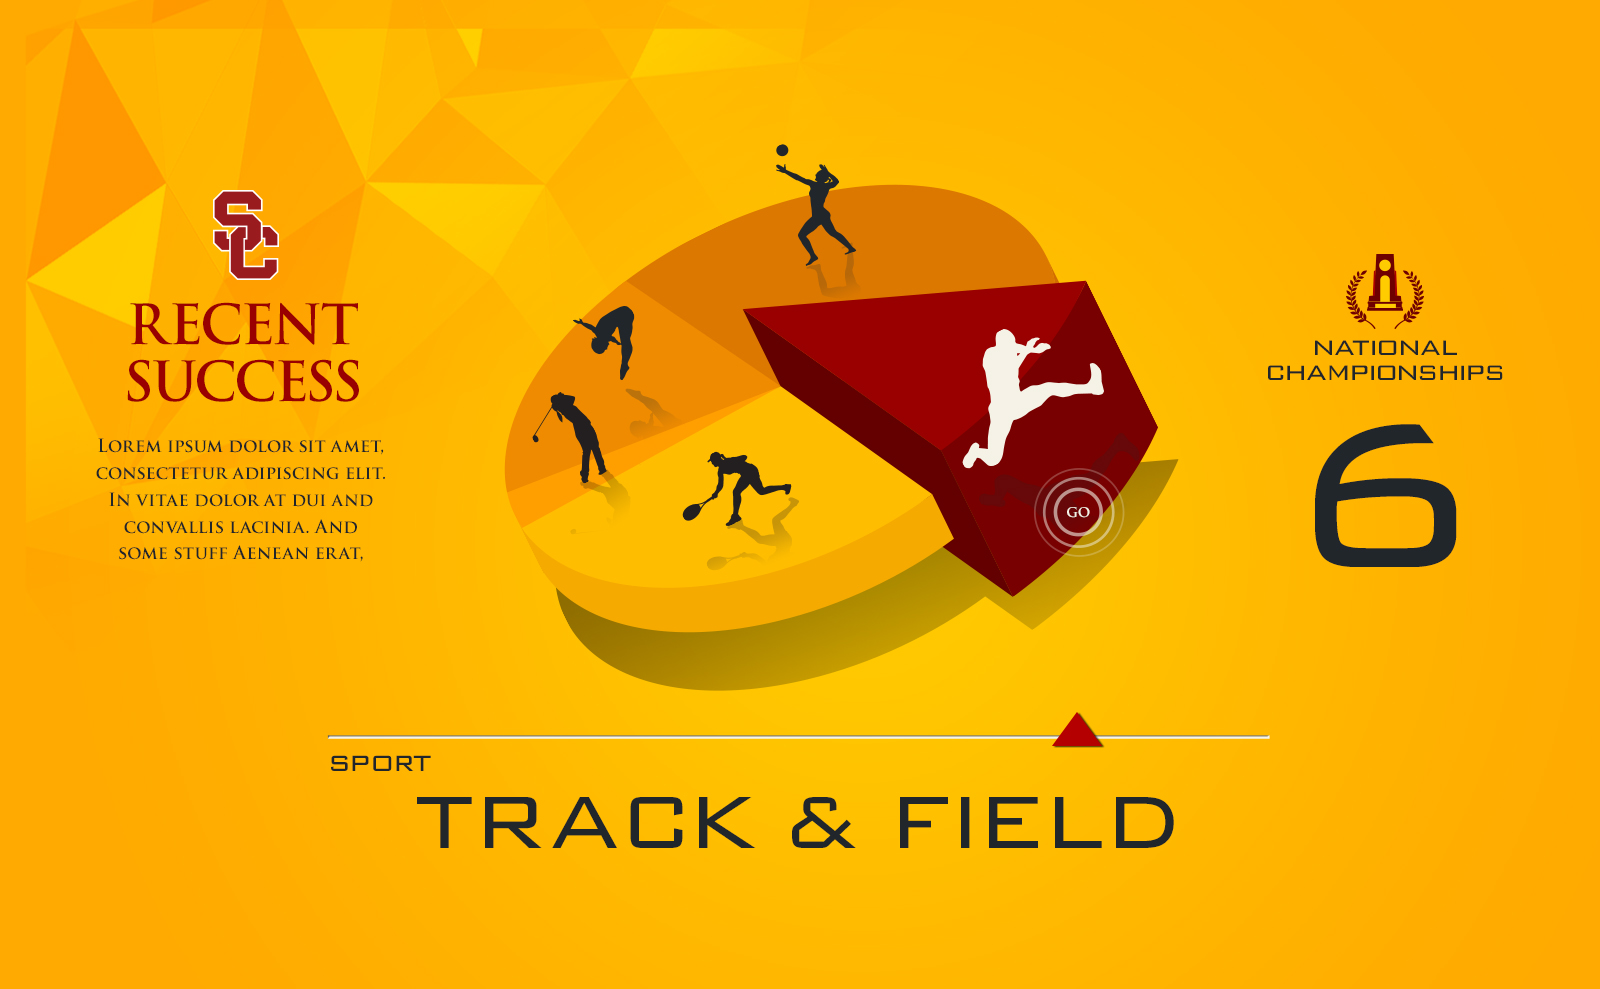 USC Interactive Screens track and field